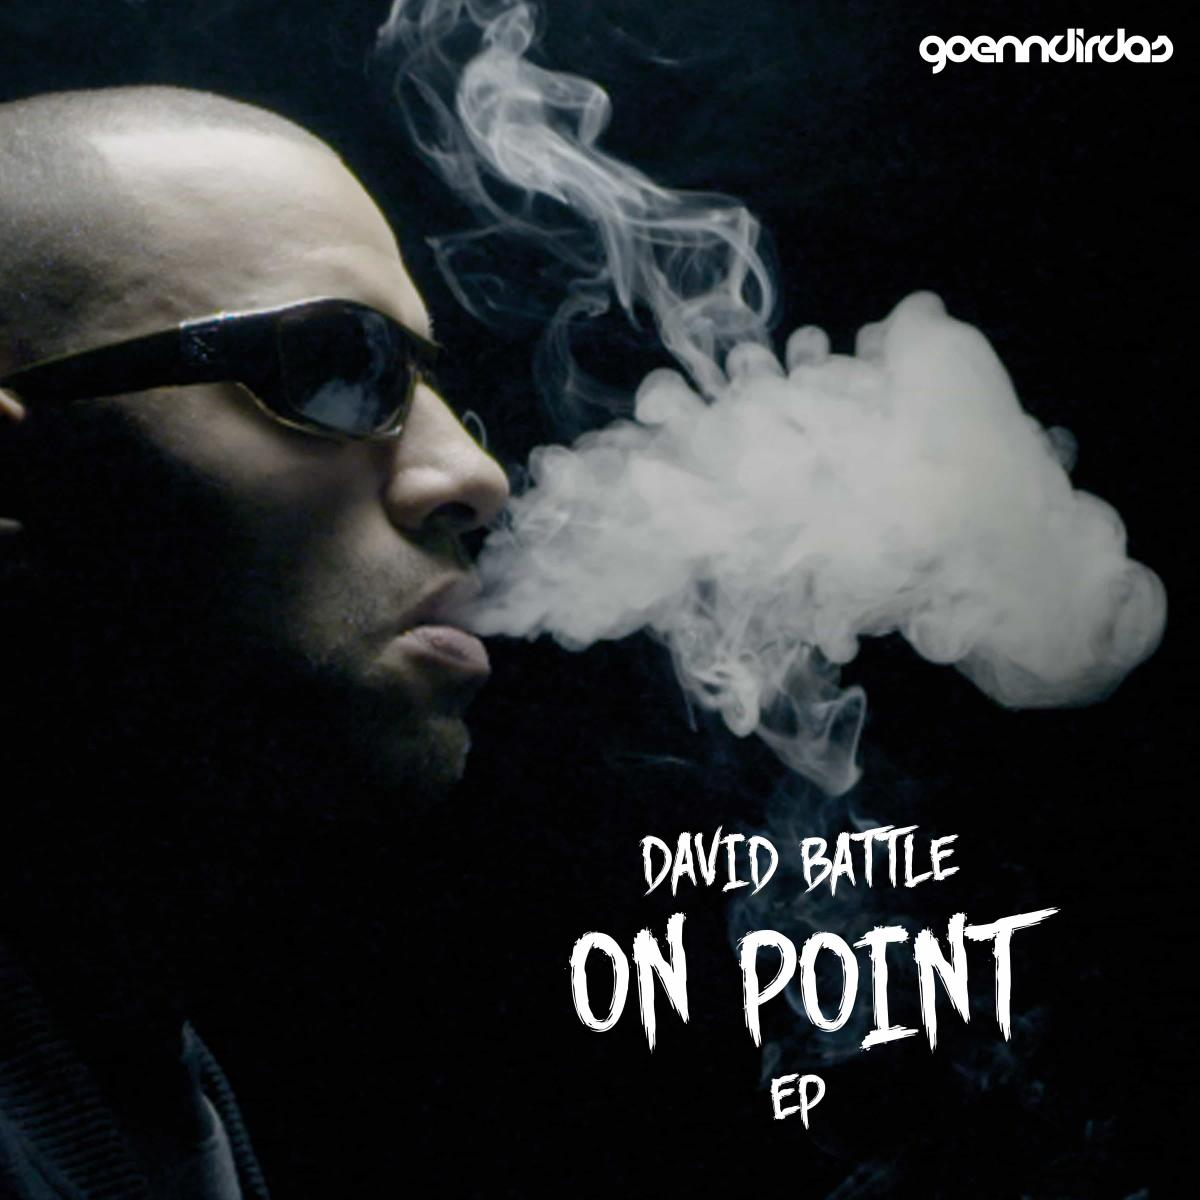 Upcoming: David Battle - ON POINT